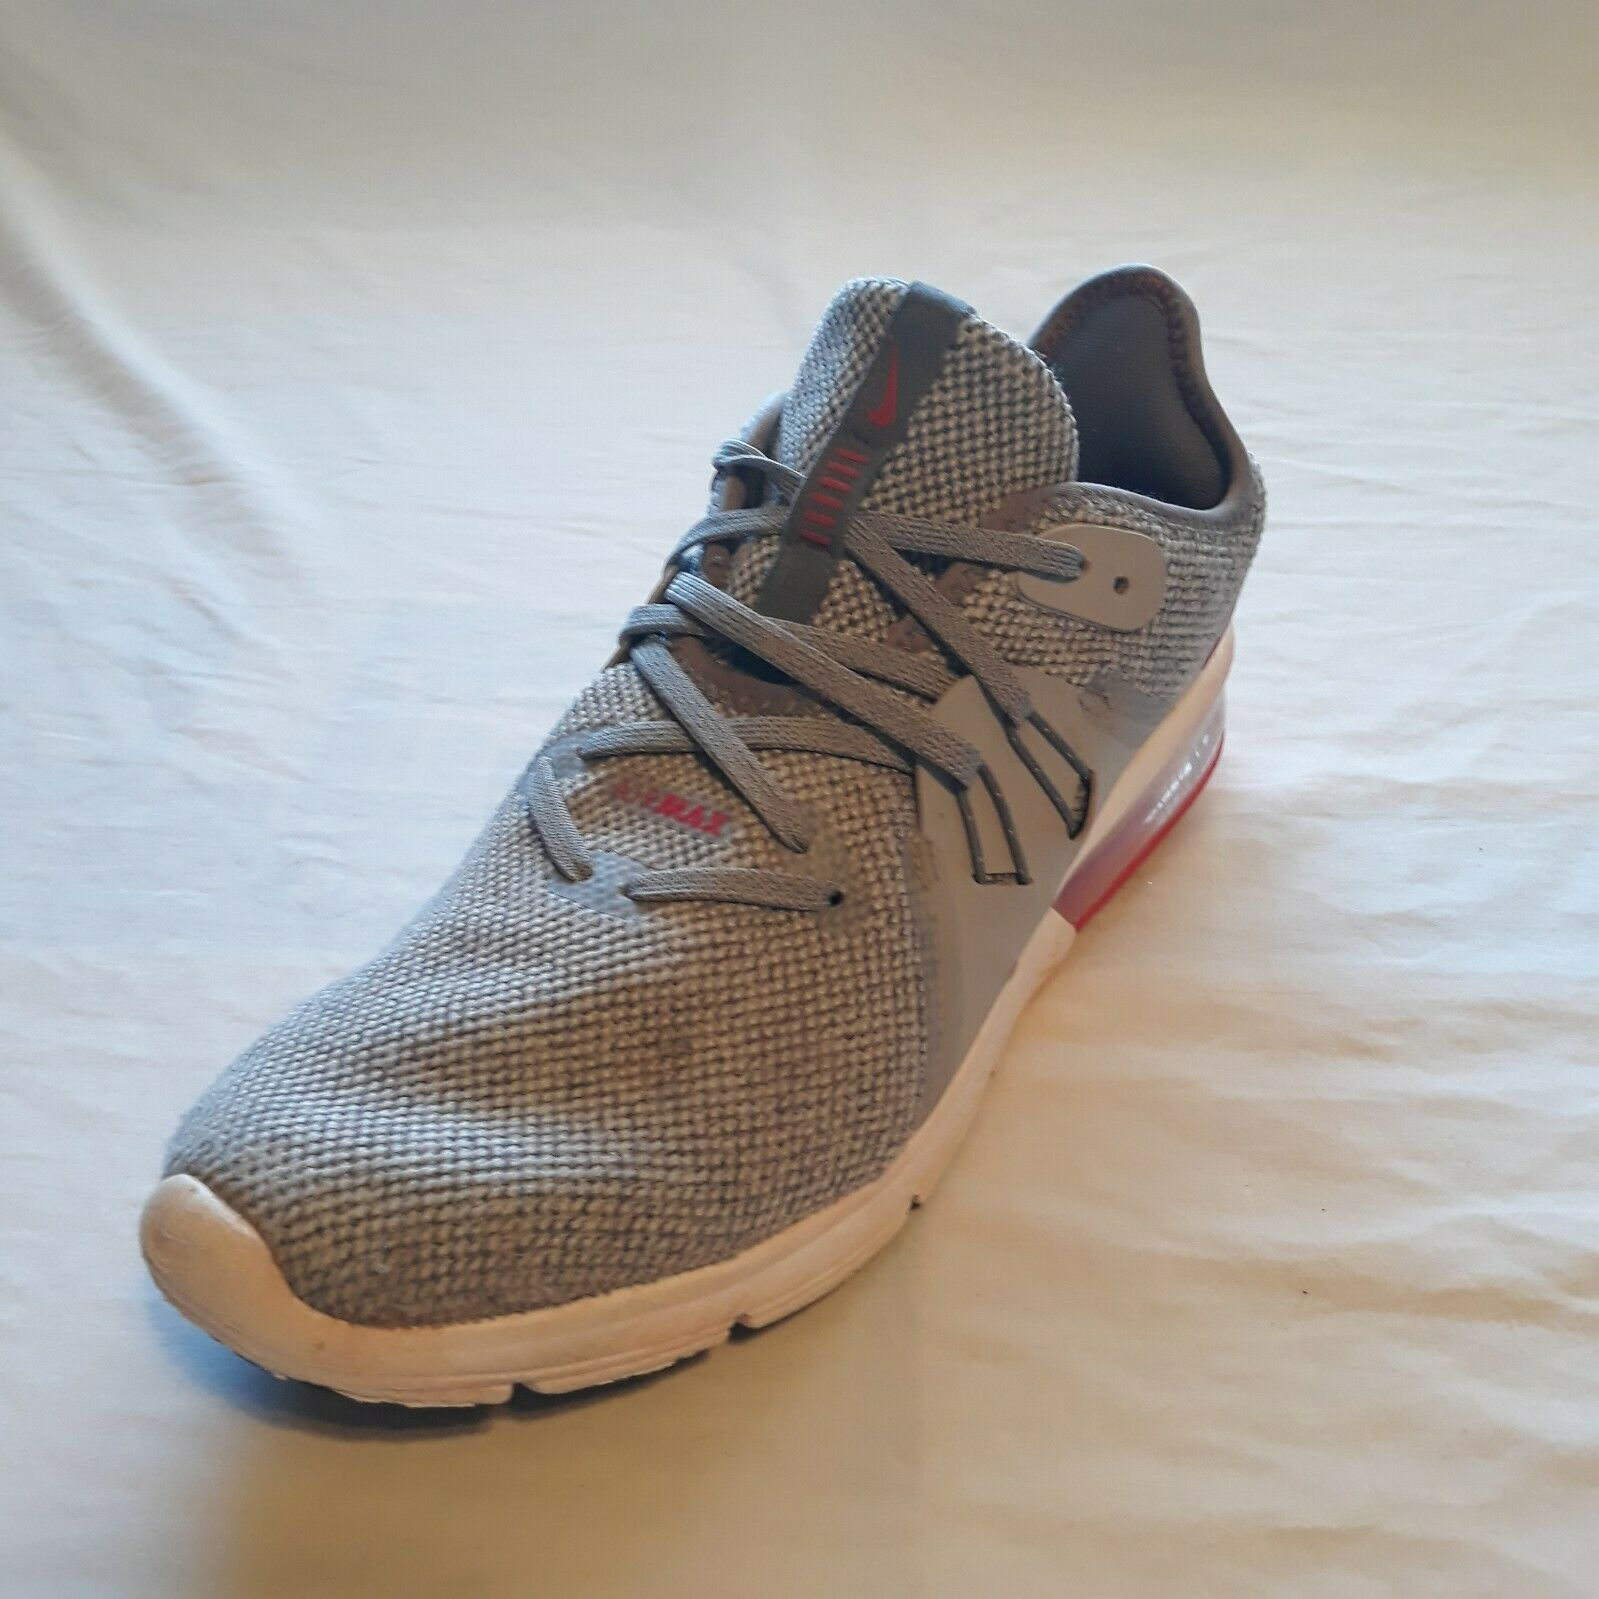 Nike Adult Shoes Gray Air Max Casual Lace Up Lightweight Comfort Size Unknown